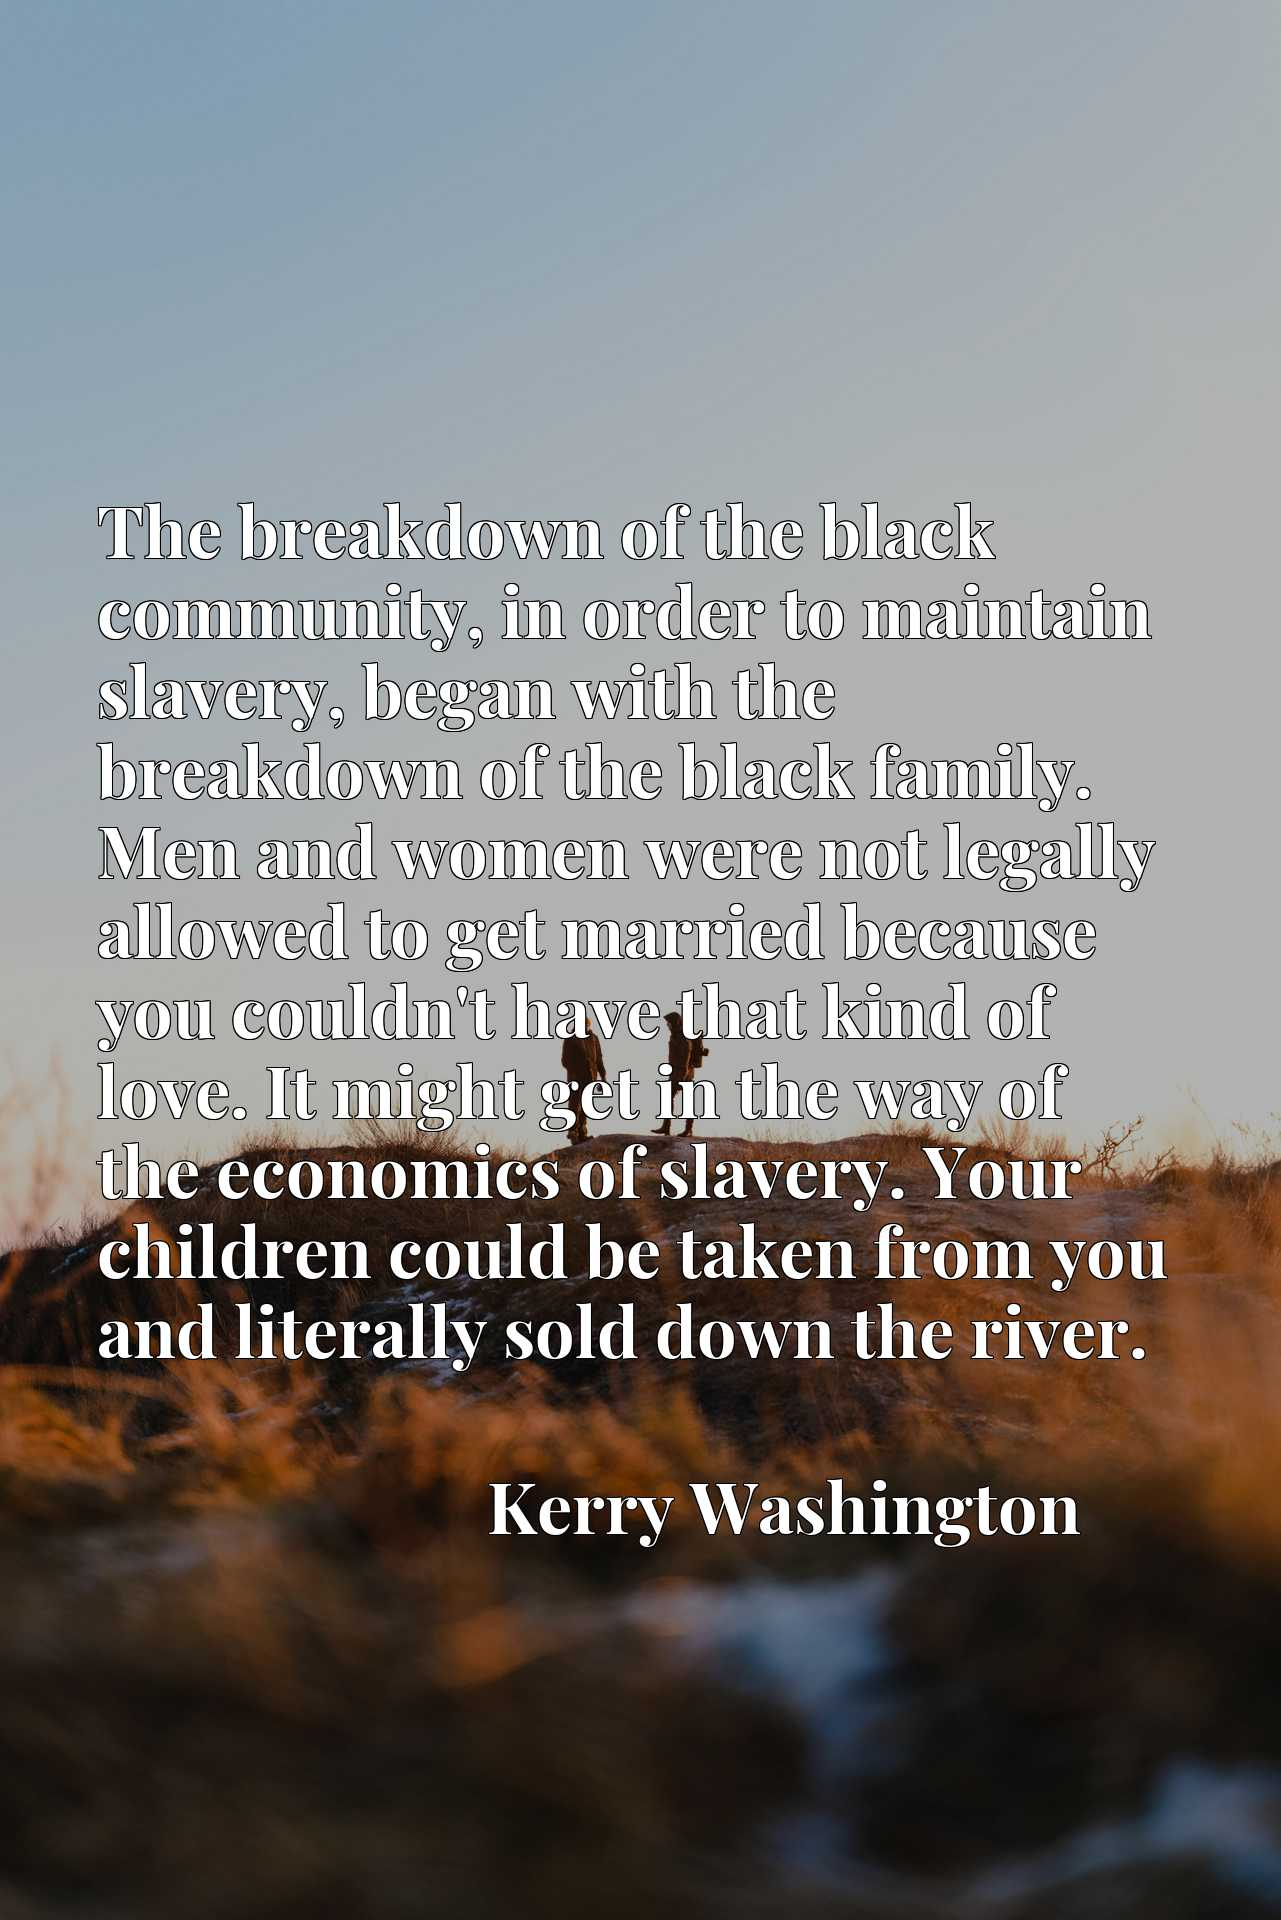 The breakdown of the black community, in order to maintain slavery, began with the breakdown of the black family. Men and women were not legally allowed to get married because you couldn't have that kind of love. It might get in the way of the economics of slavery. Your children could be taken from you and literally sold down the river.